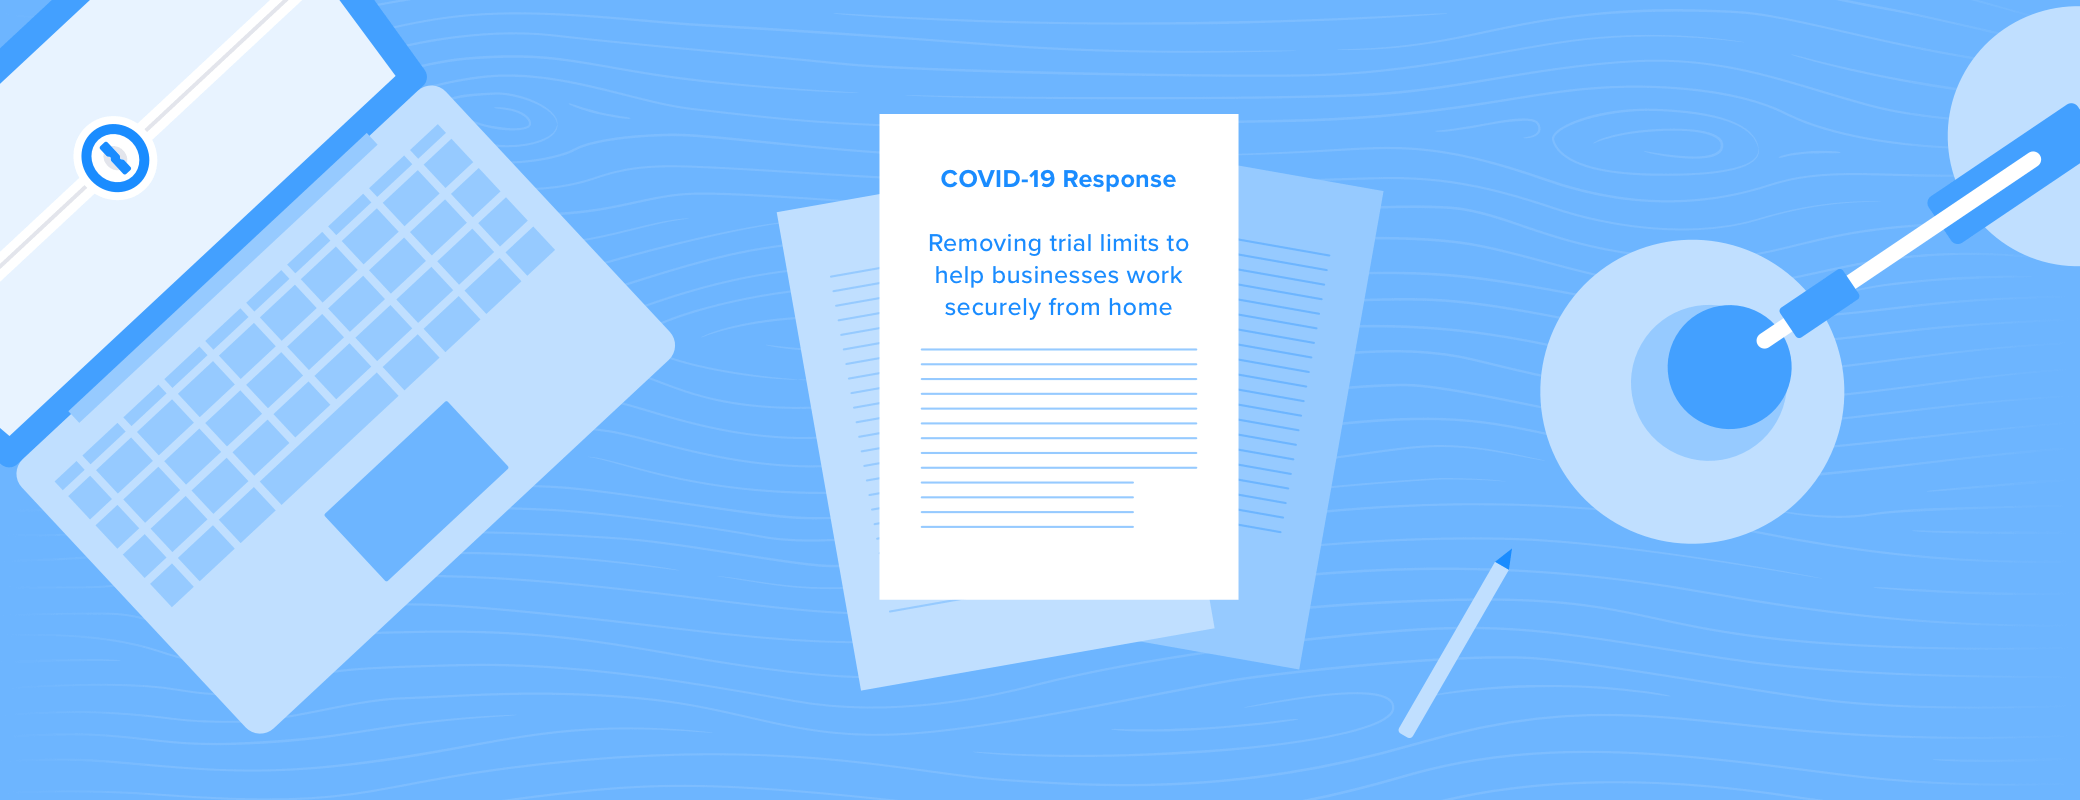 COVID-19 Response - Removing trial limits to help businesses work securely from home